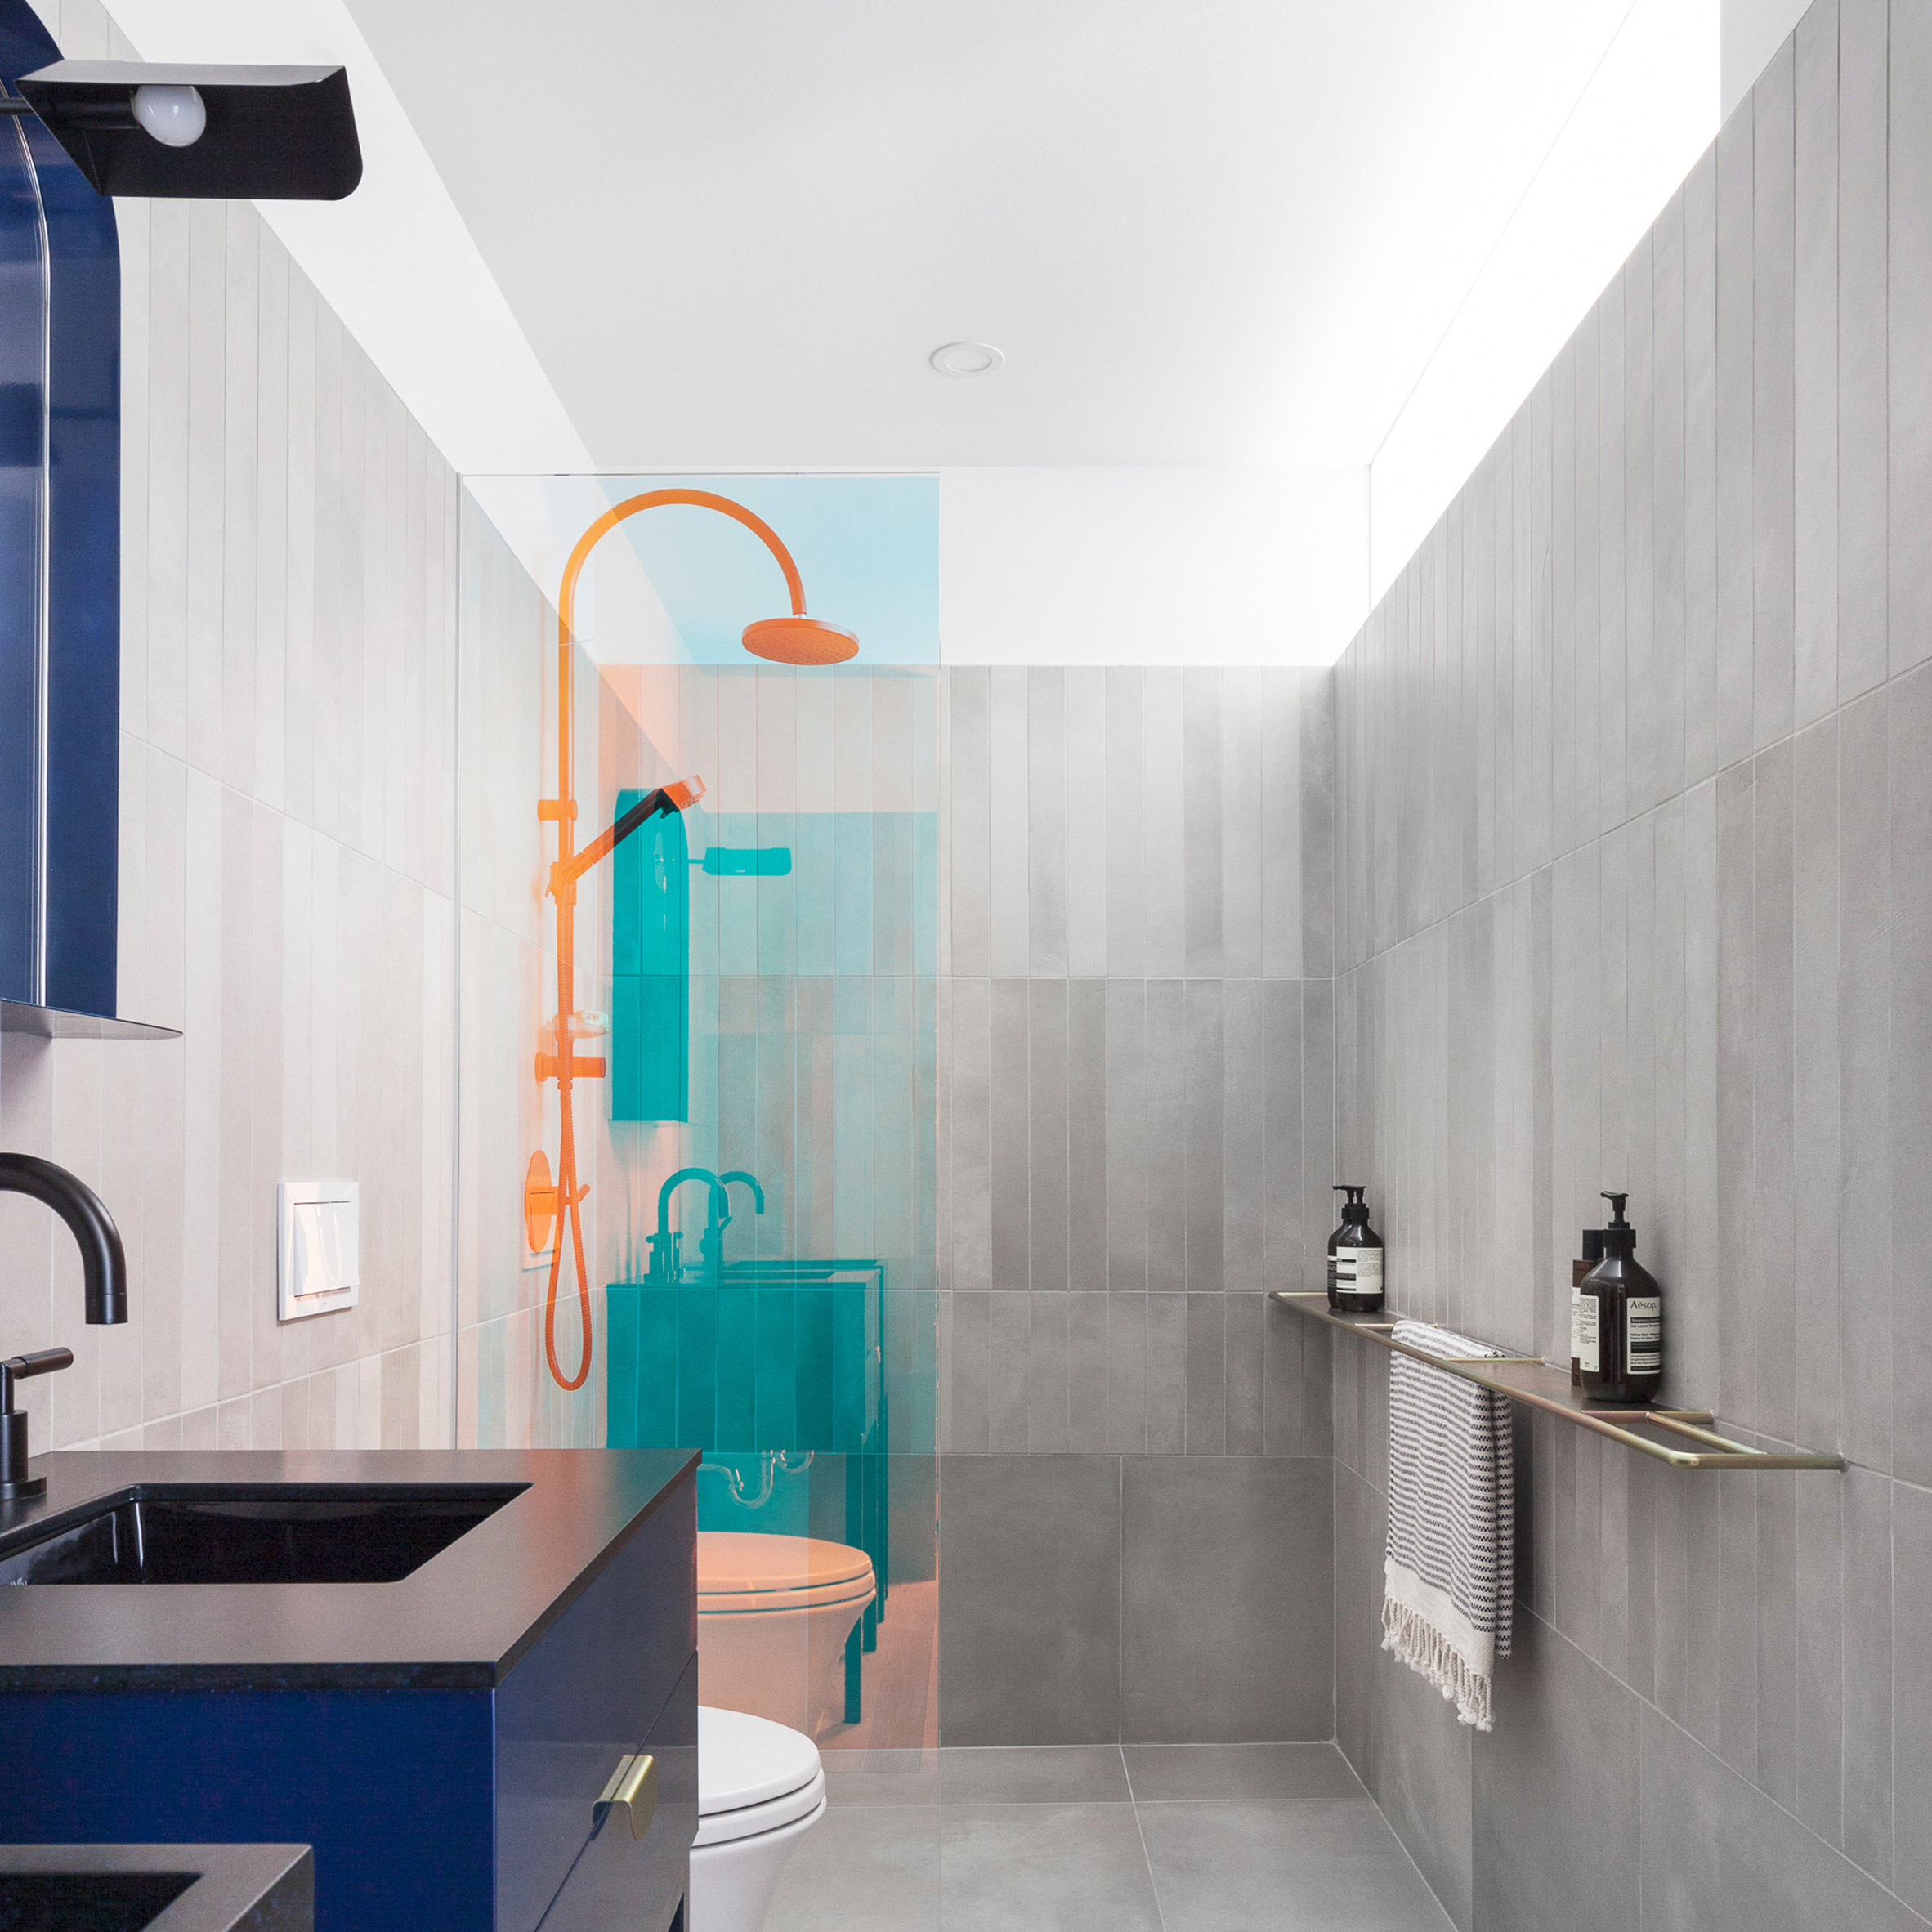 Extraordinary Shower Ideas That Will Excite You Talkdecor